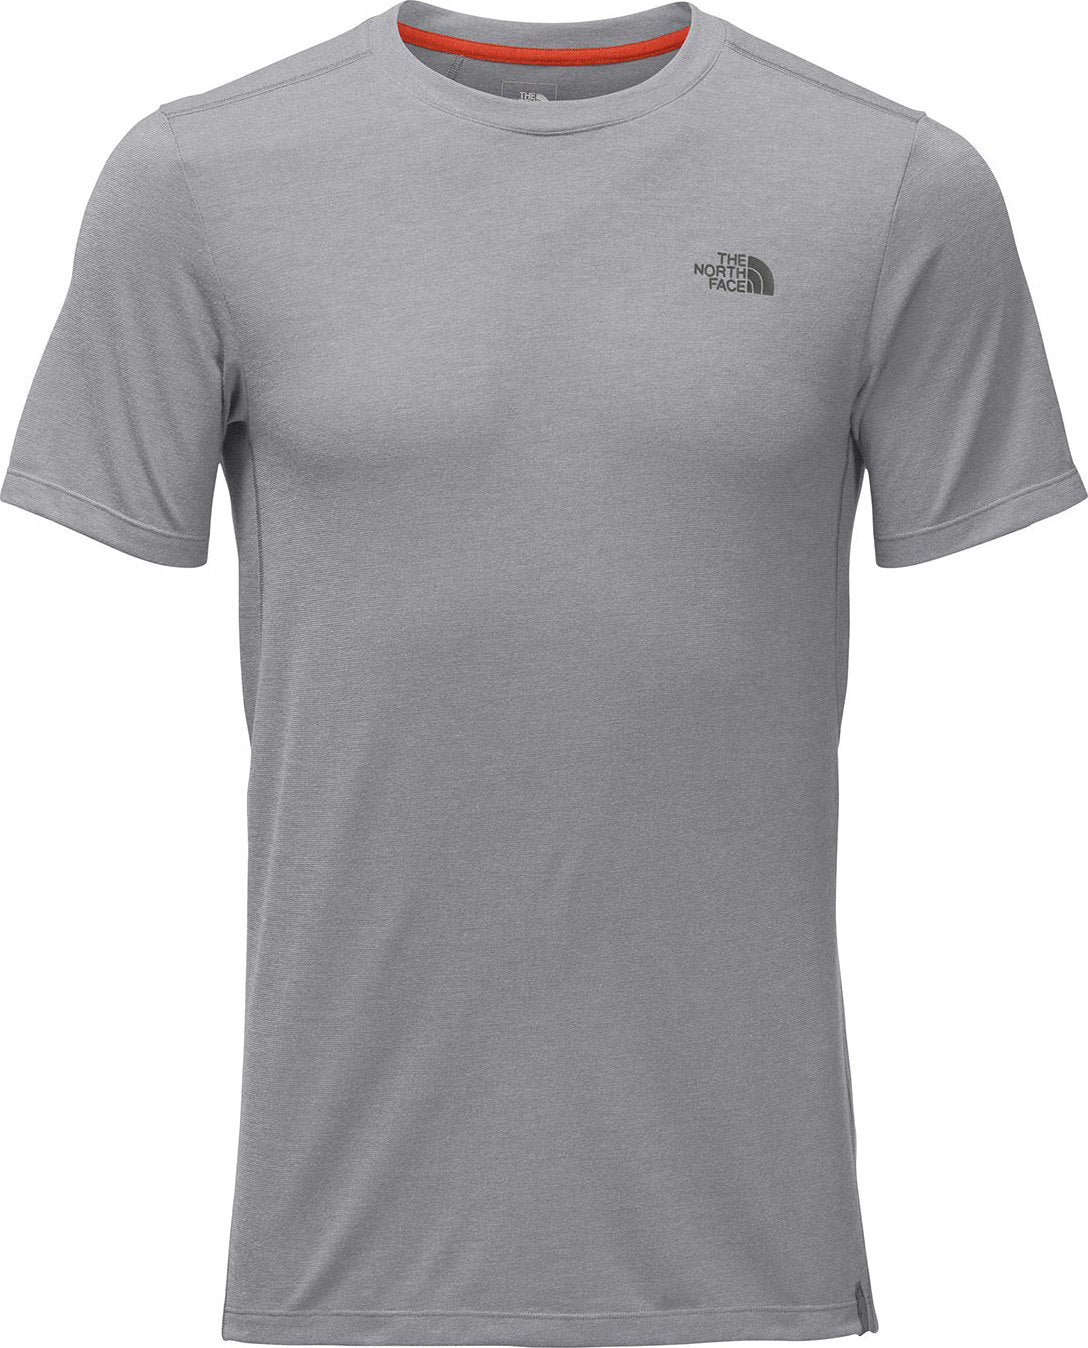 1eee20356 The North Face Men's Beyond the Wall Short Sleeve Tee